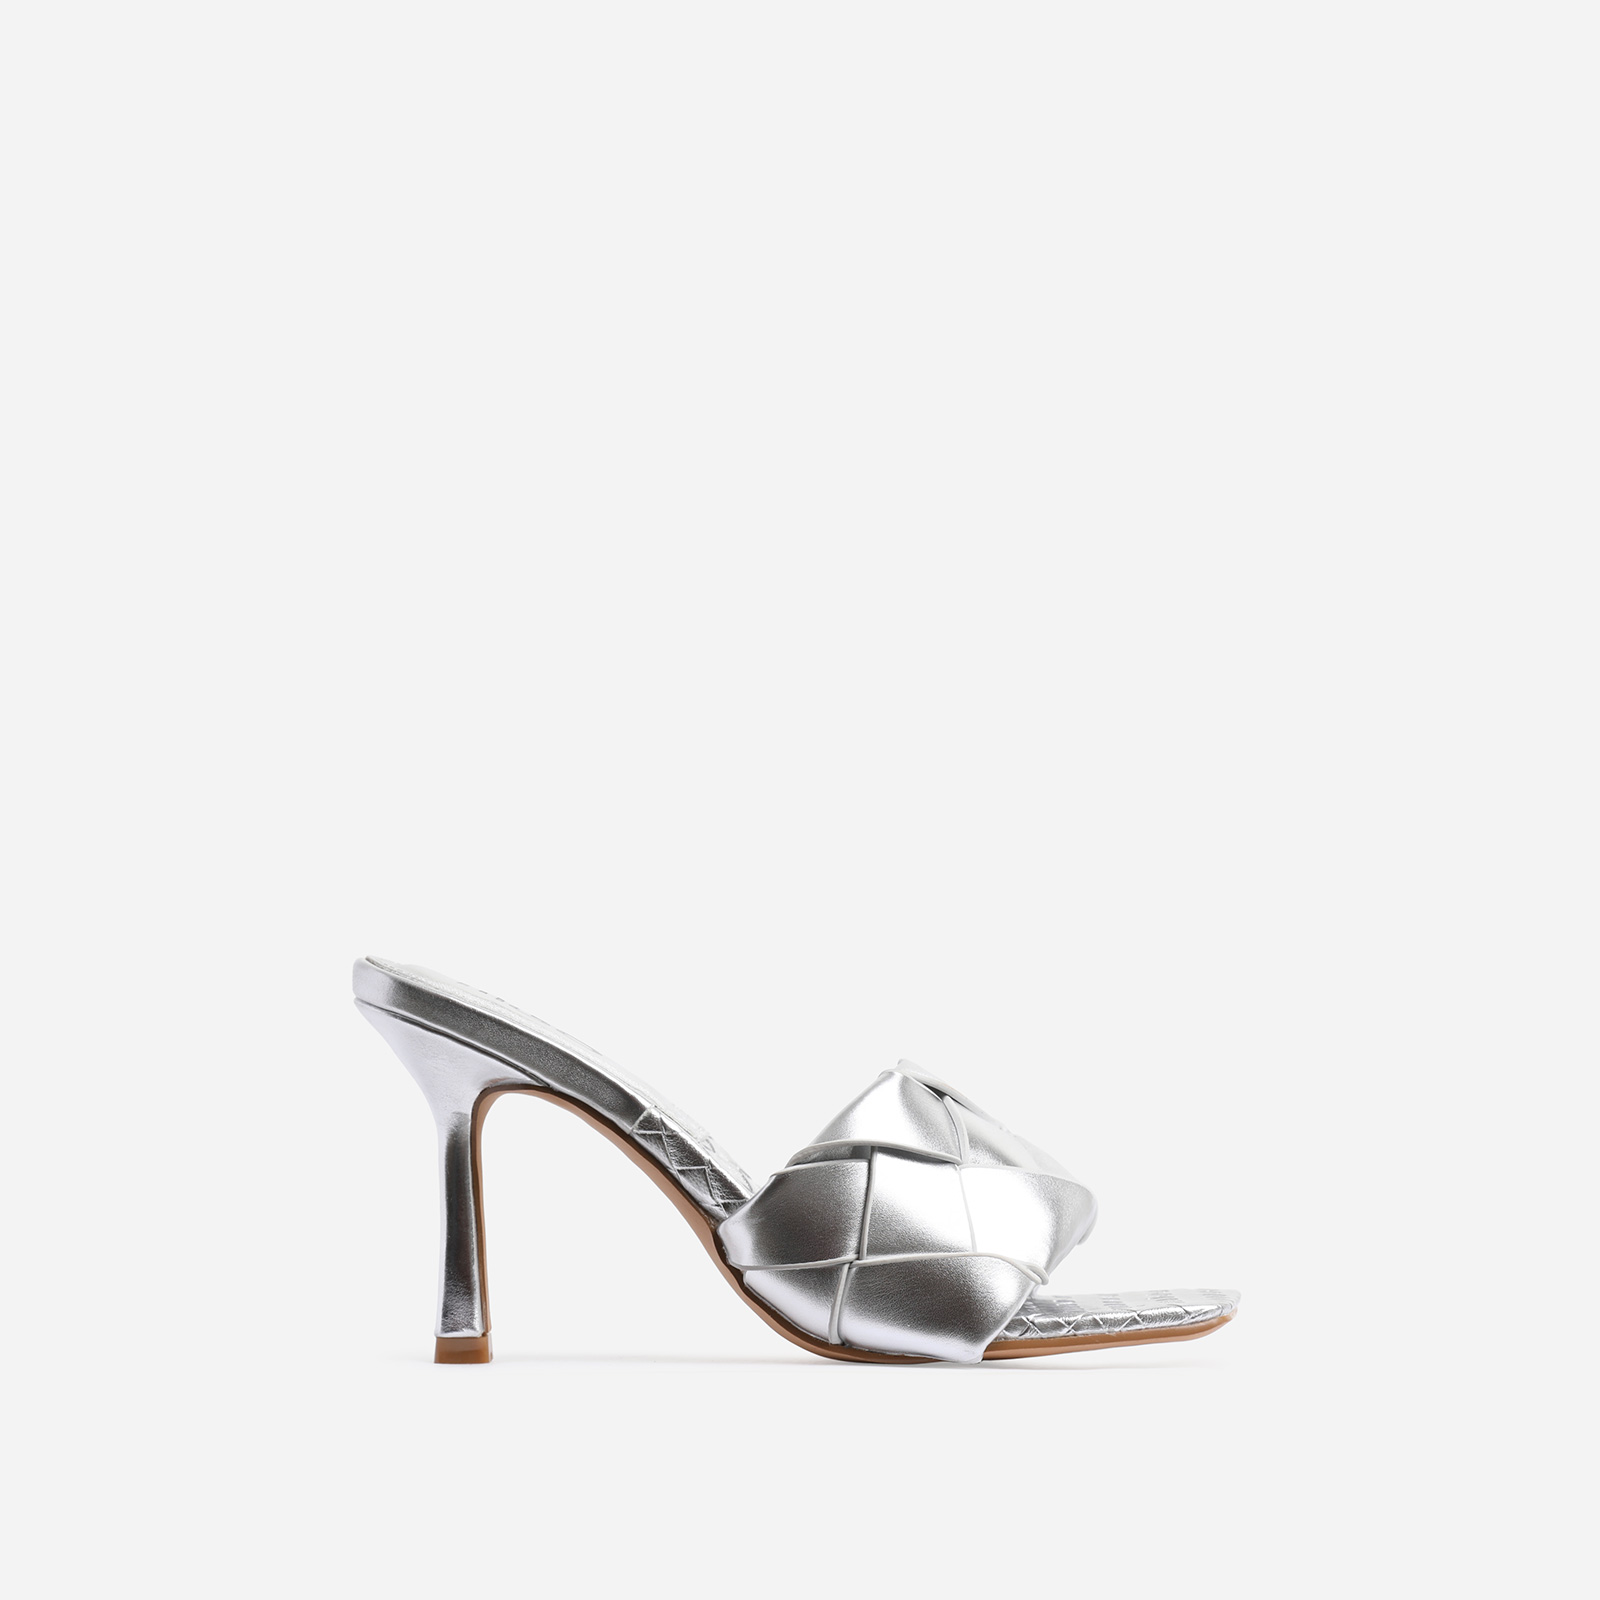 Turntup Woven Square Peep Toe Mule In Metallic Silver Faux Leather